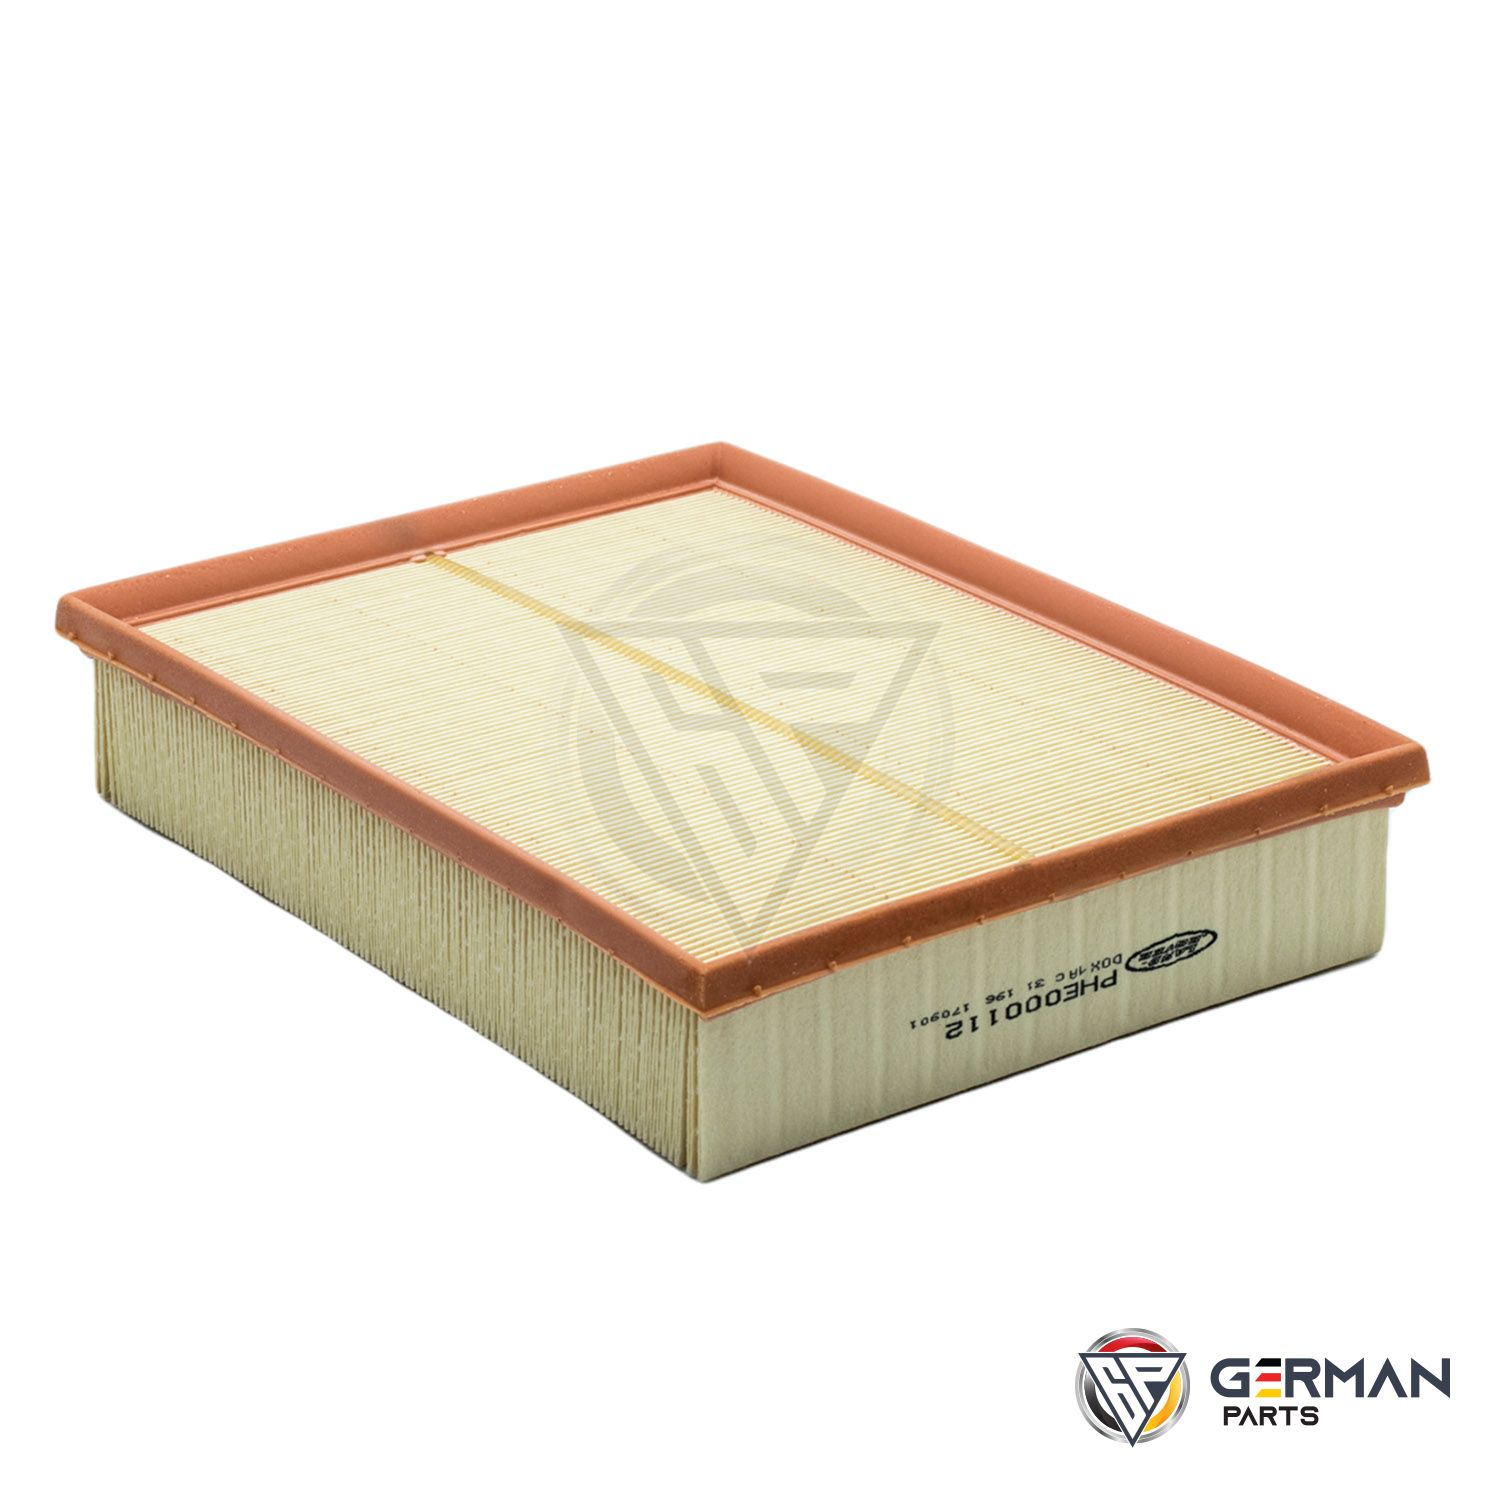 Buy Genuine Land Rover Air Filter PHE000112 - German Parts